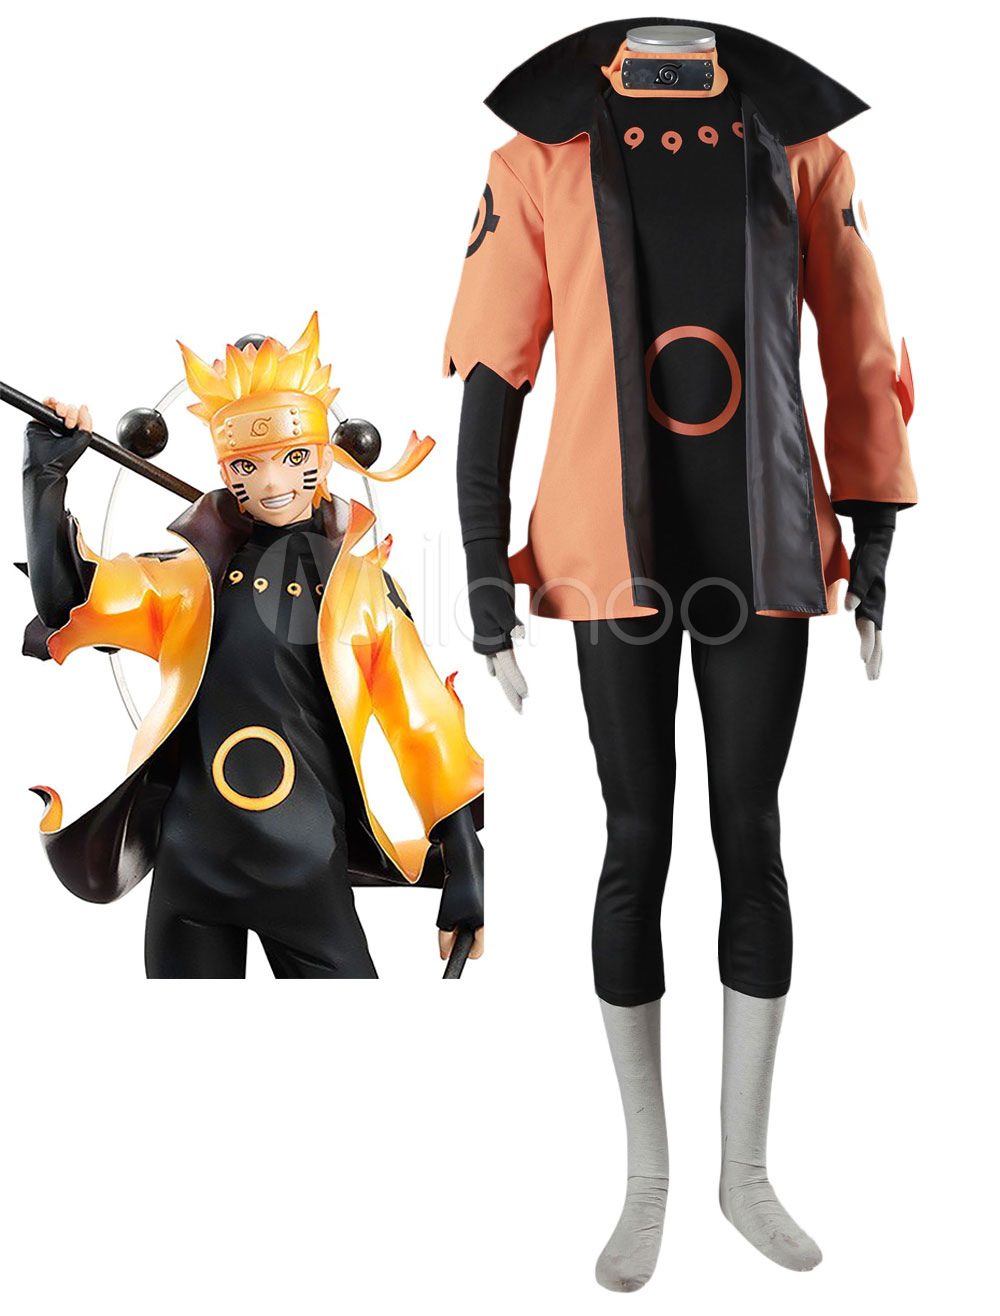 Buy Naruto Uzumaki Naruto Rikudou Sennin Model Cosplay Costume Halloween for $75.99 in Milanoo store